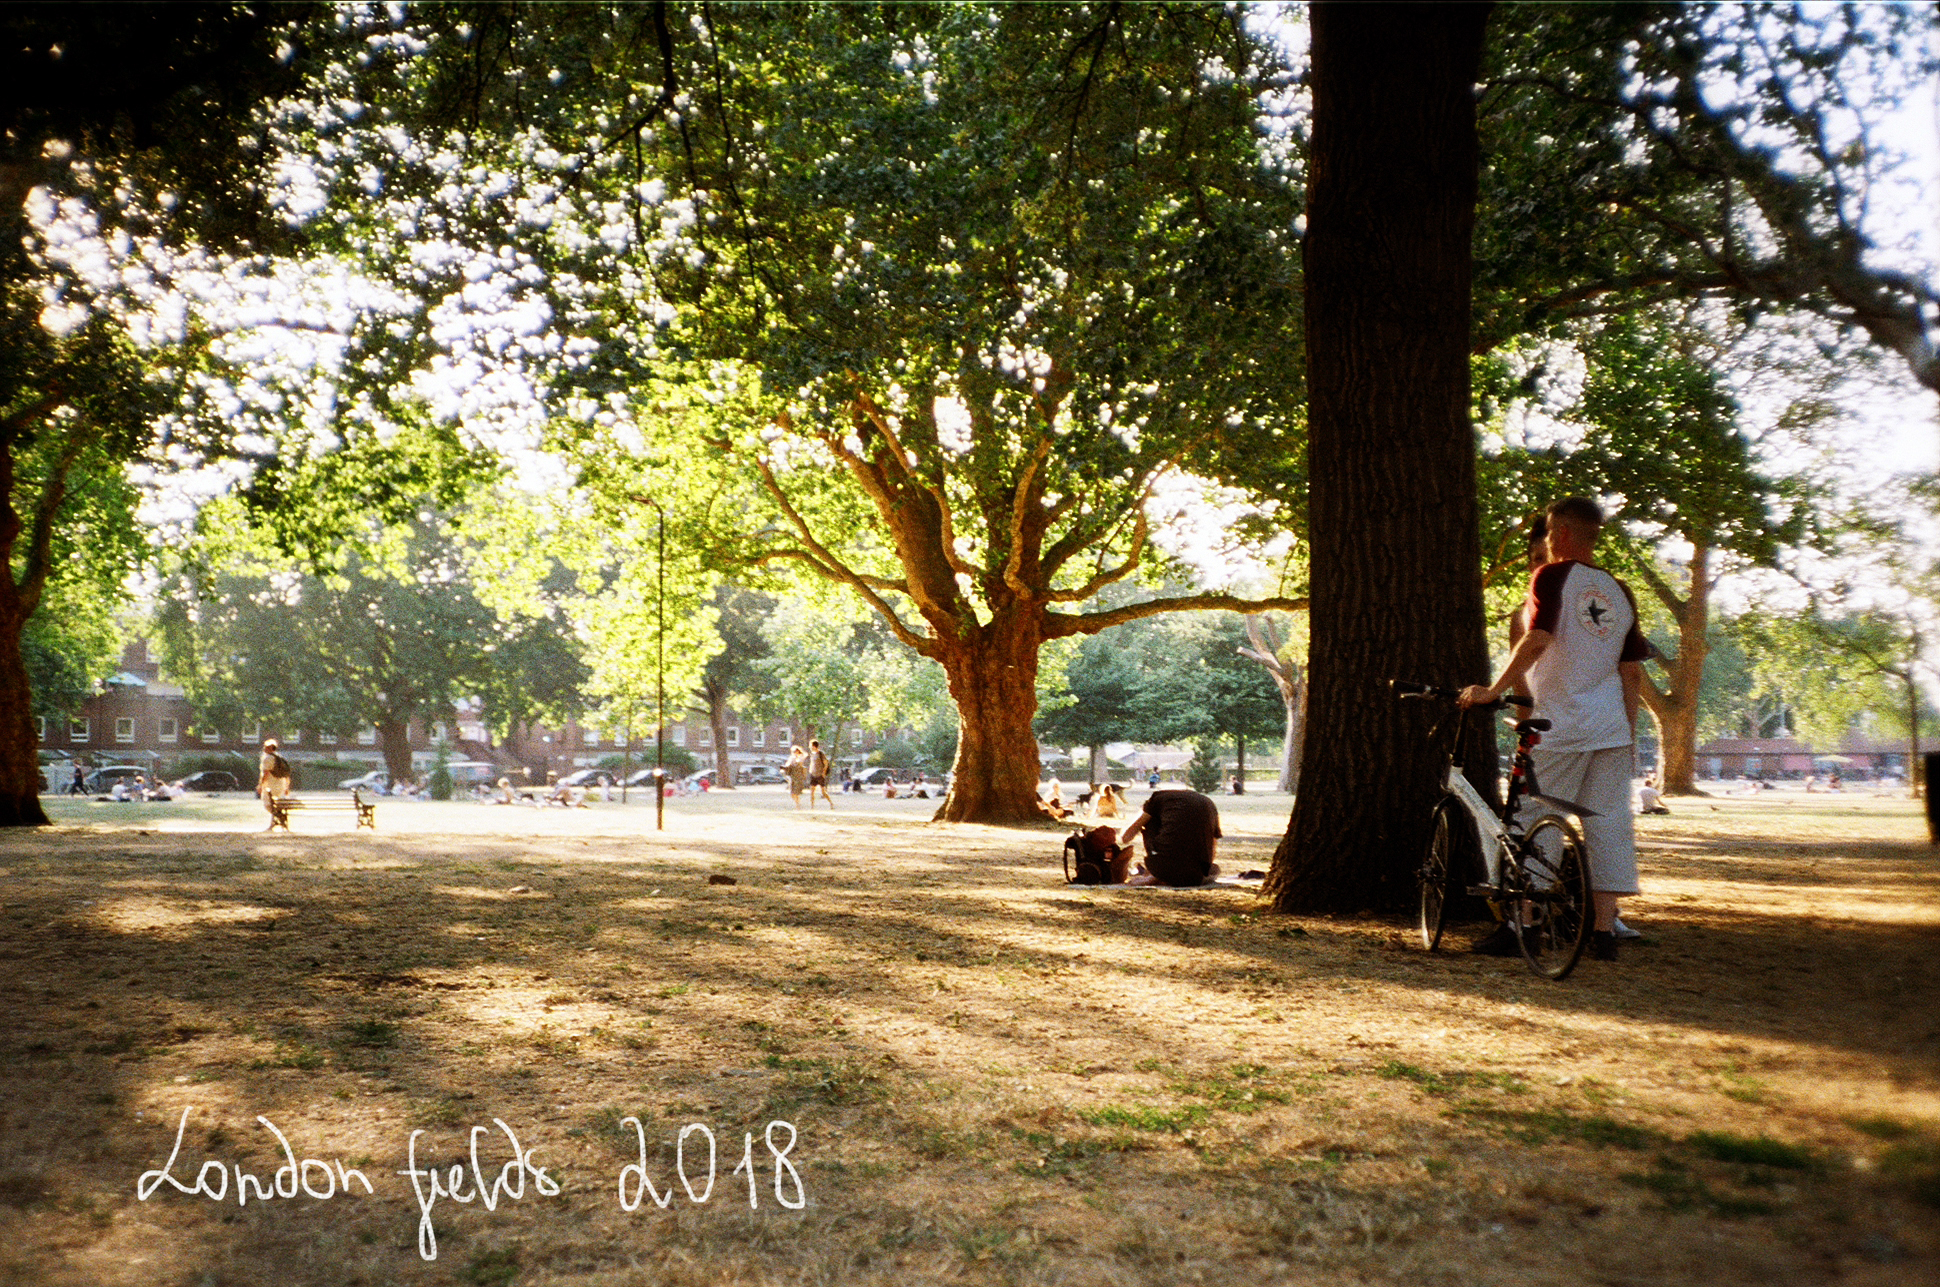 London fields visual diary on 35mm film by Ailera Stone